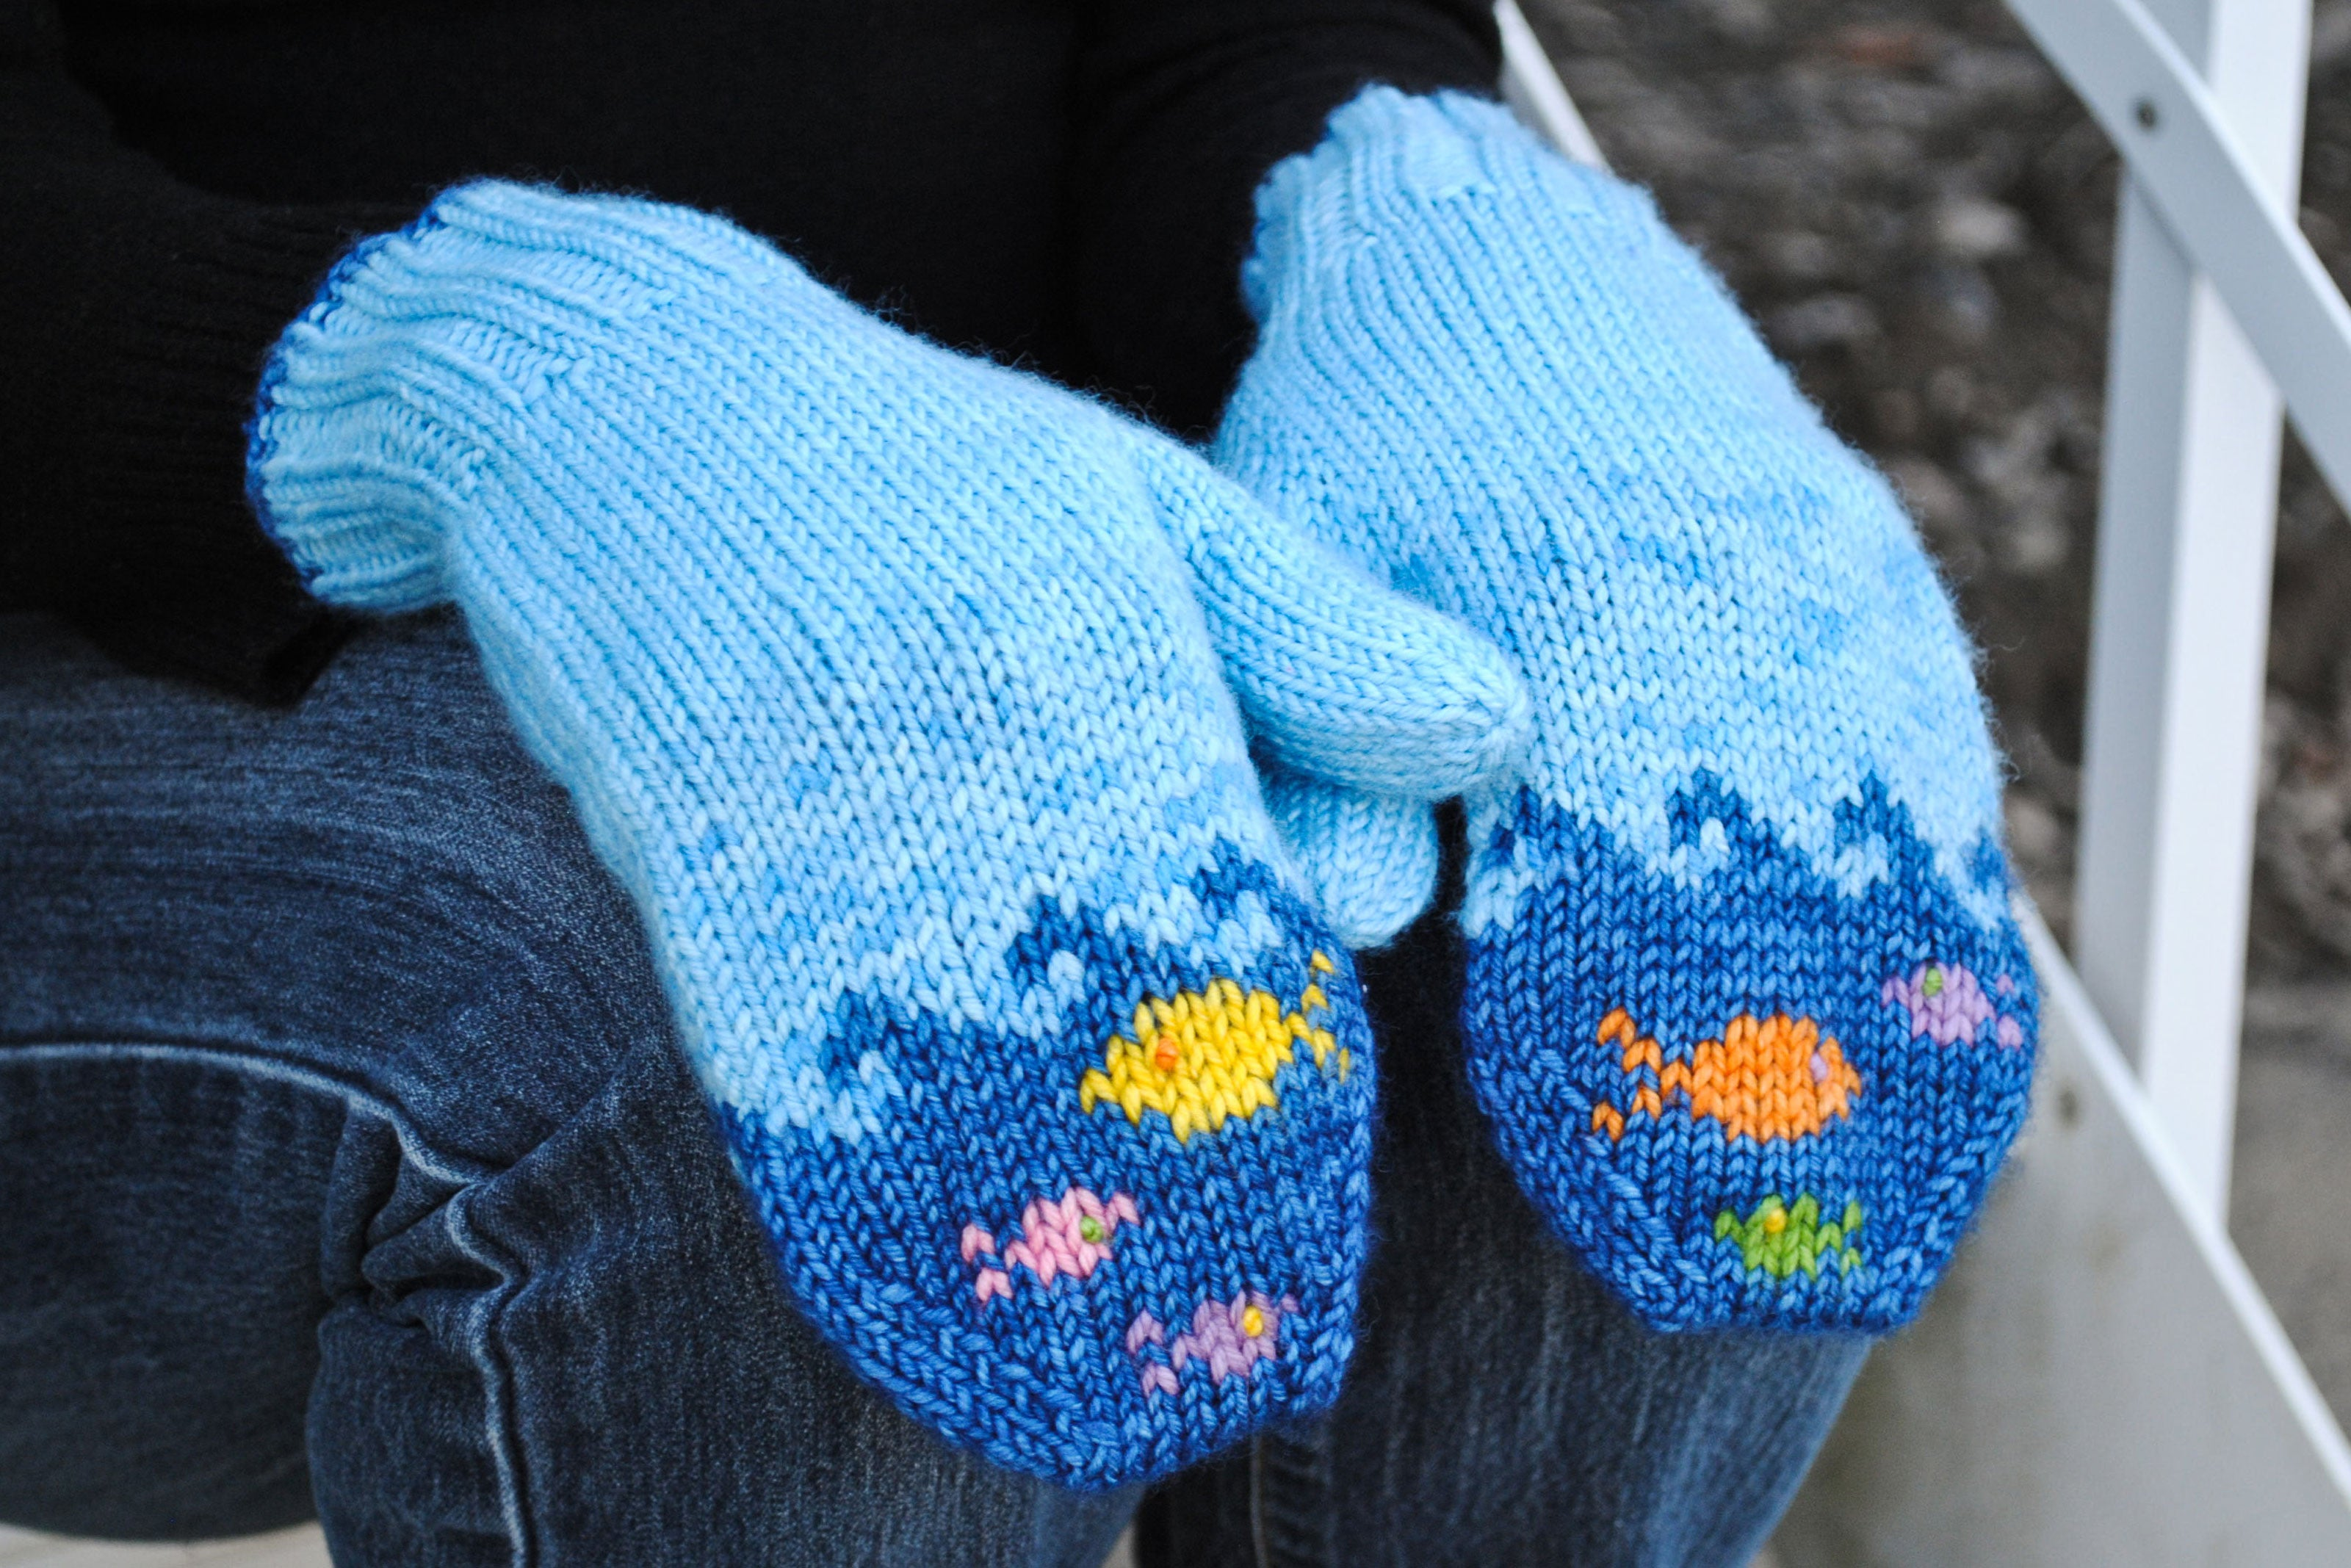 Knitting Pattern For Fish Mittens : Zippity Raglan knitting pattern - Sweet Paprika Designs